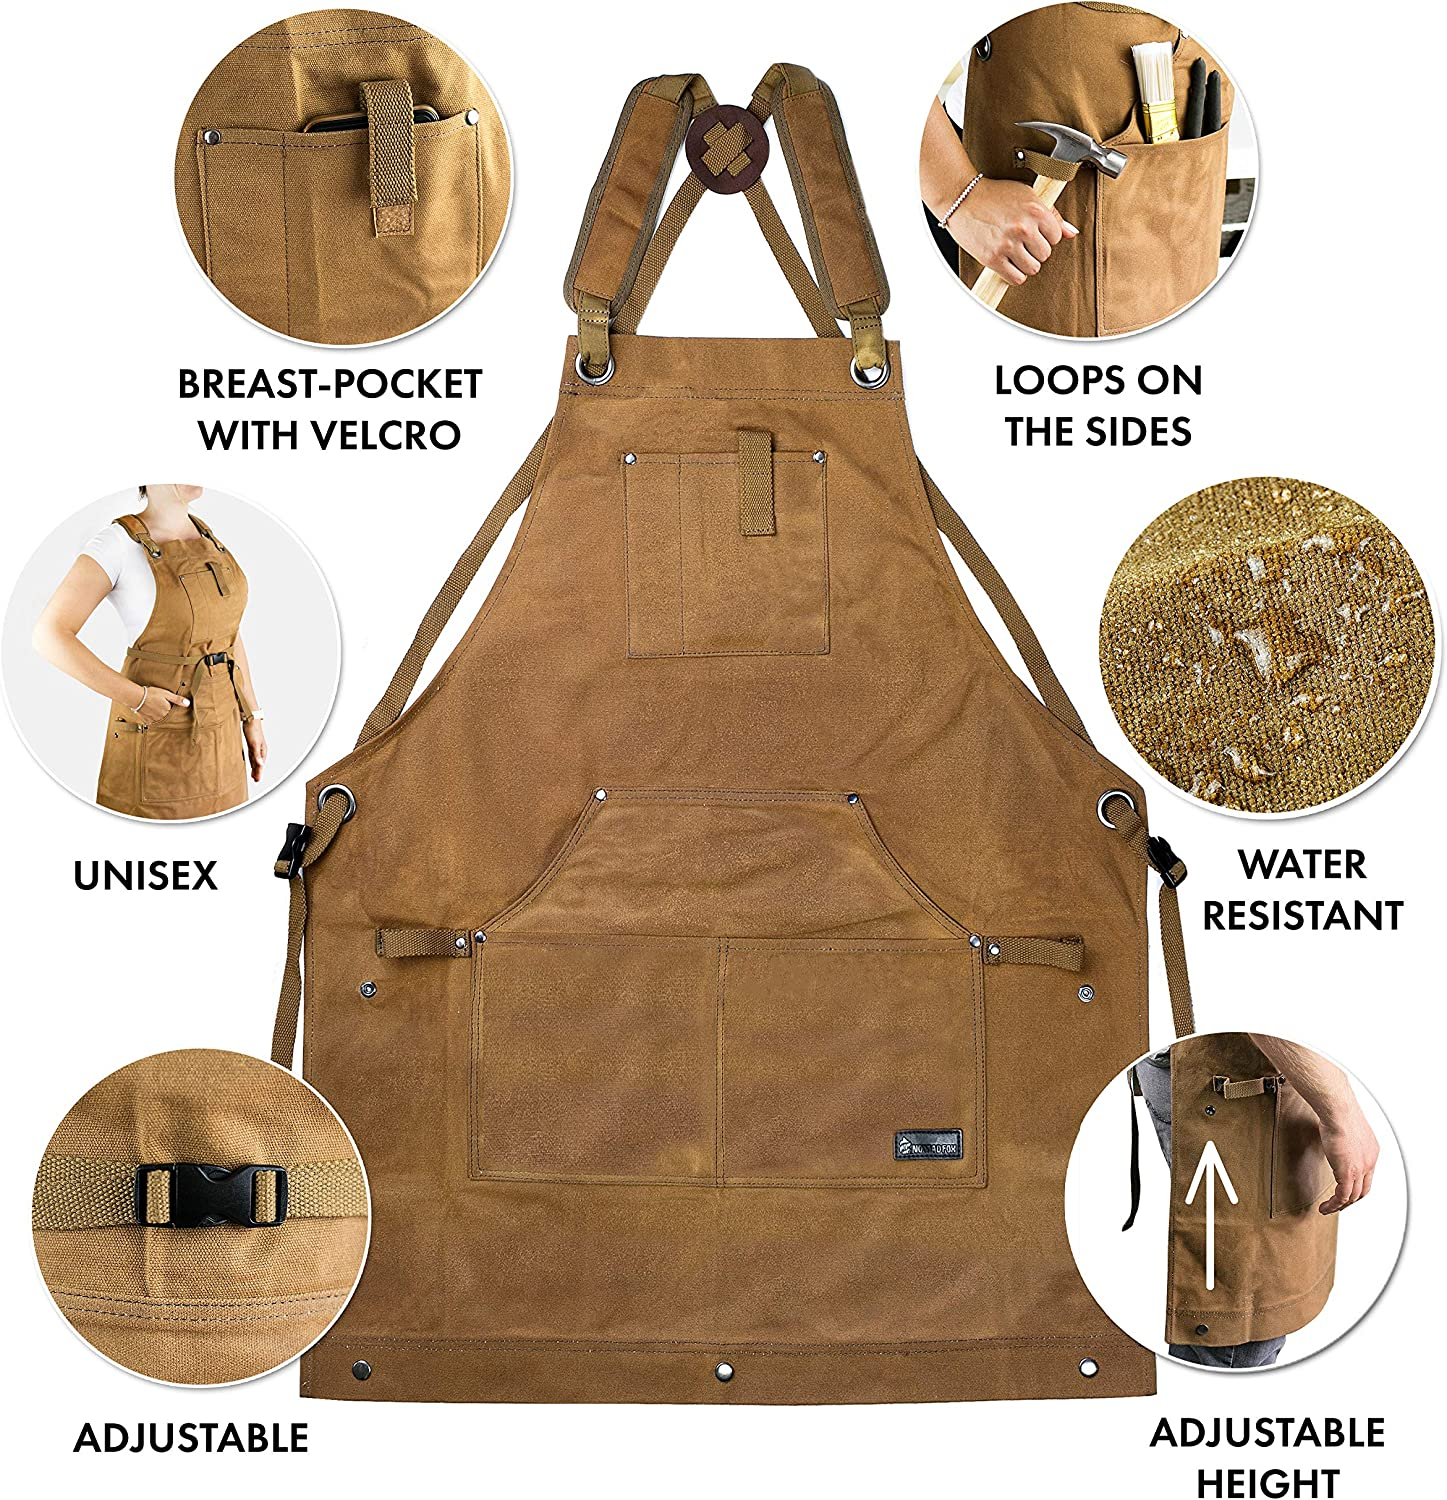 Brown Waterproof Canvas Work Apron for Men and Women Heavy-Duty Waxed for Durability and Safety